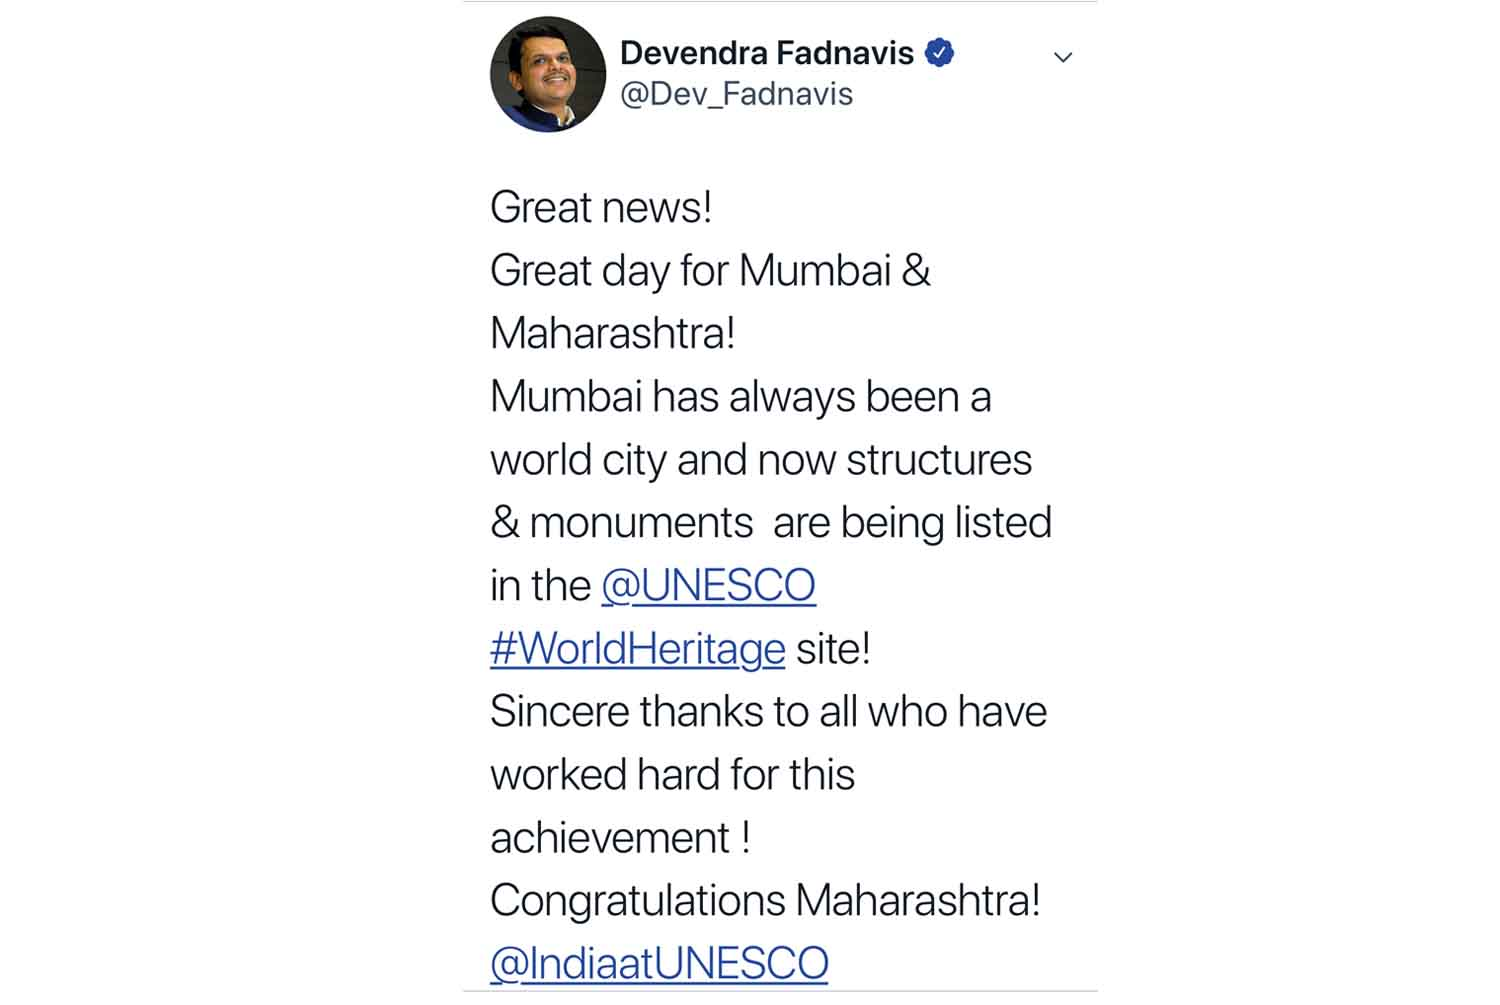 Chief Minister Tweet's about the inscription